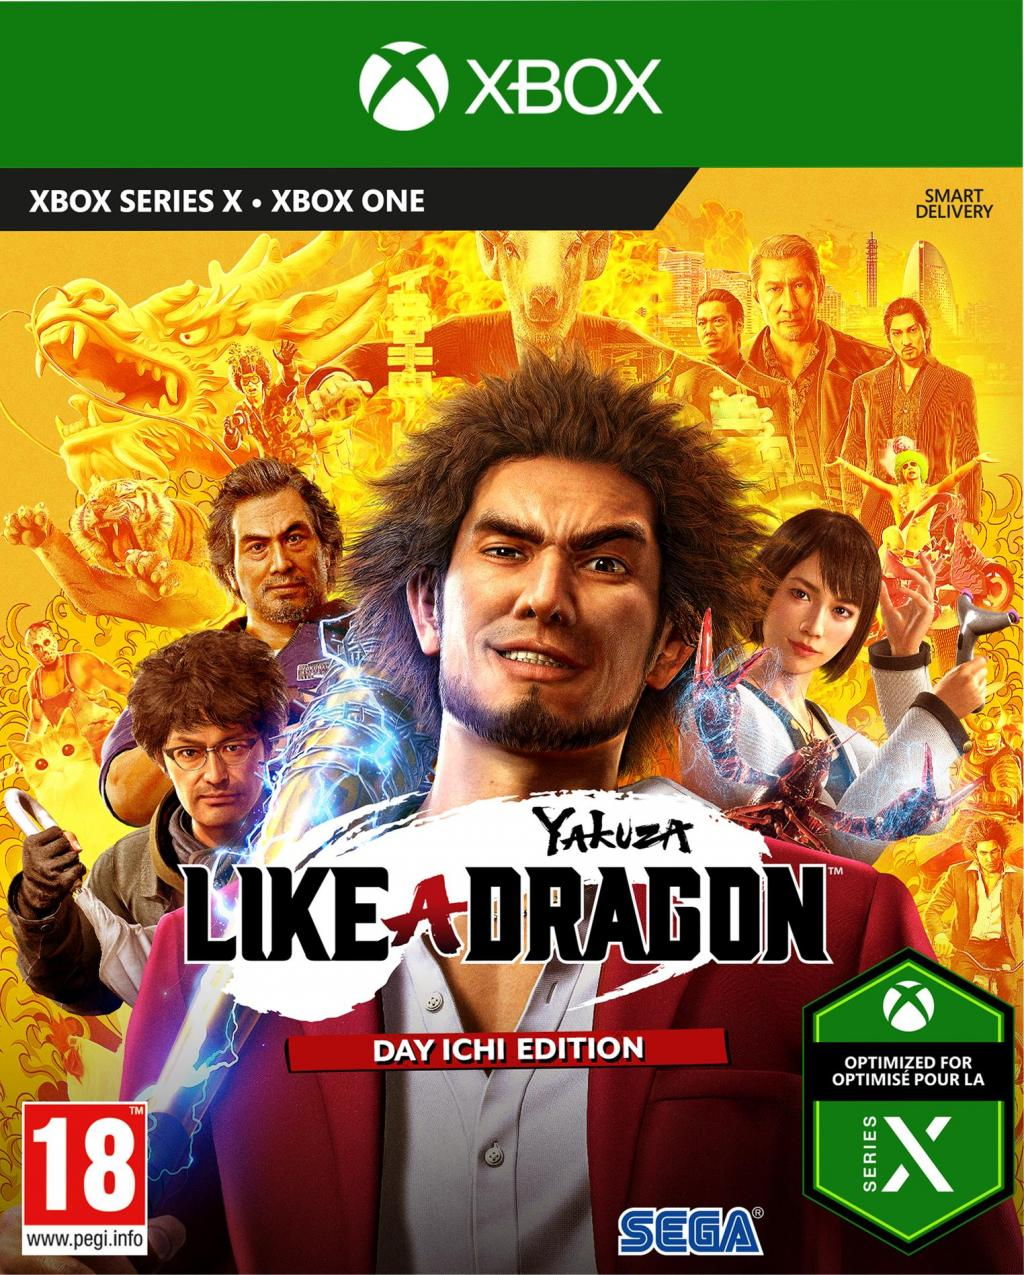 Yakuza: Like A Dragon - Day Ichi Edition (JPN & UK voice) XBONE & XBSX_1